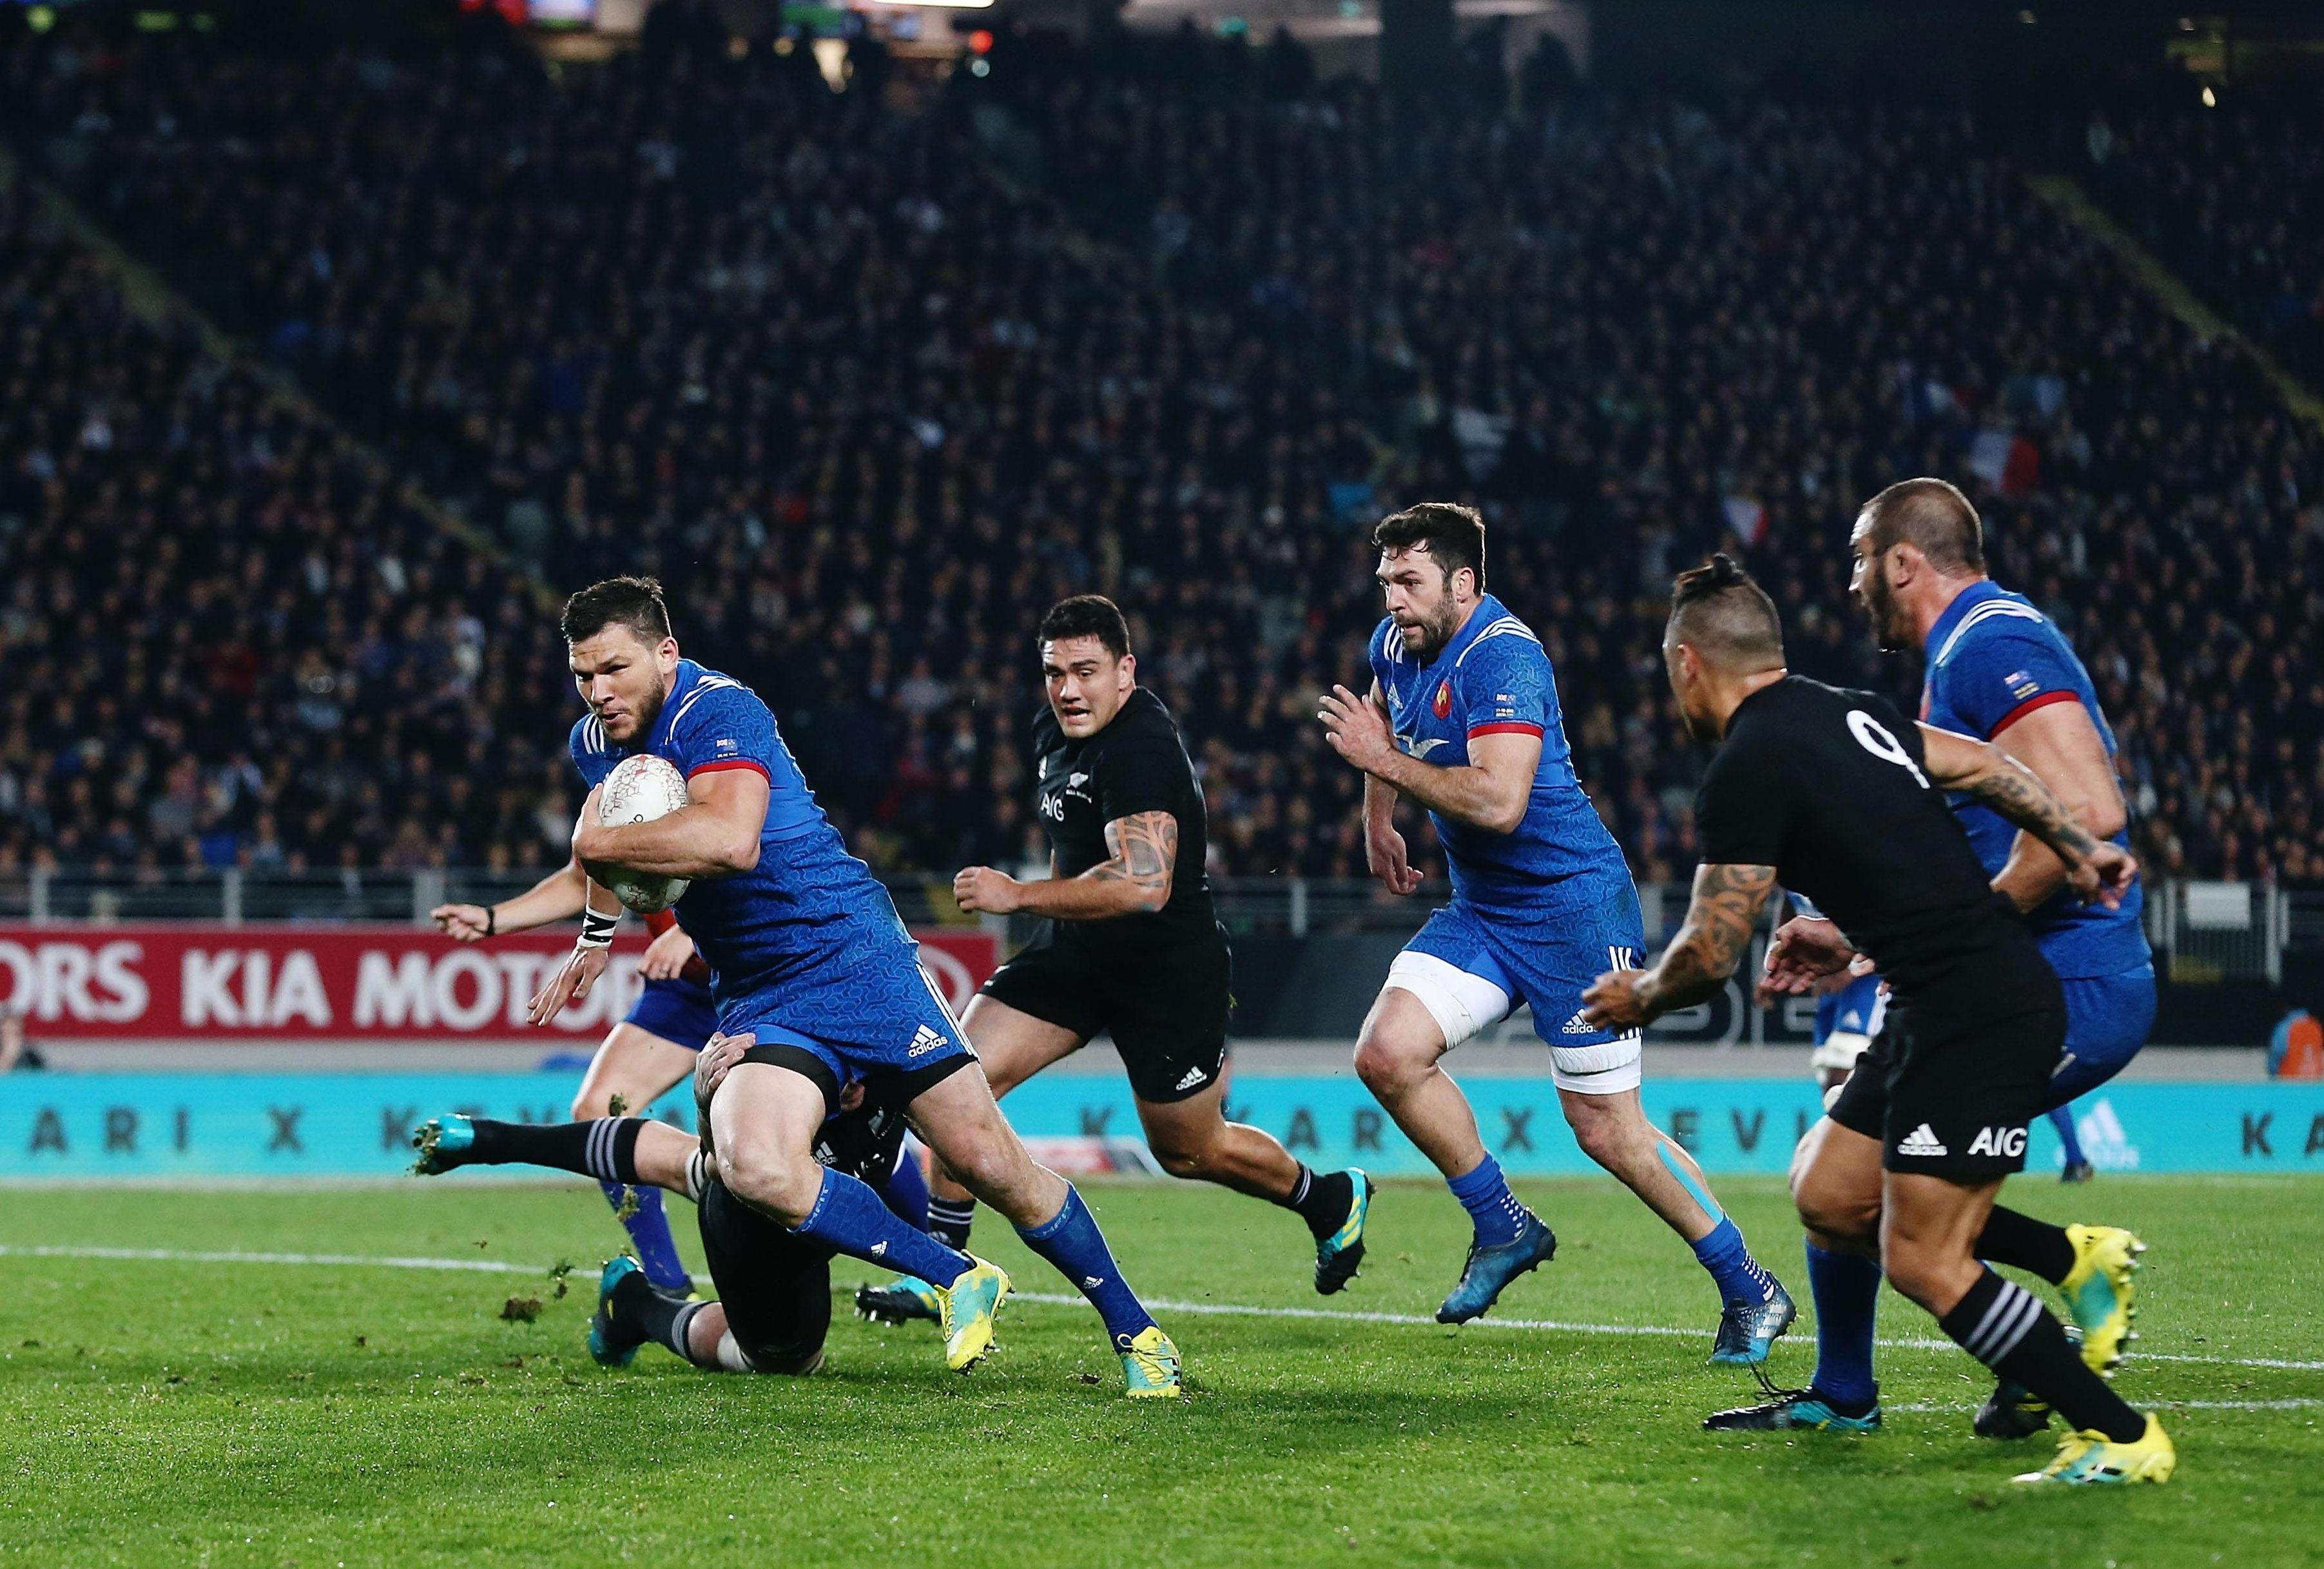 Grosso scored the opening try of the game as France started fast but it all unravelled after they suffered a yellow card